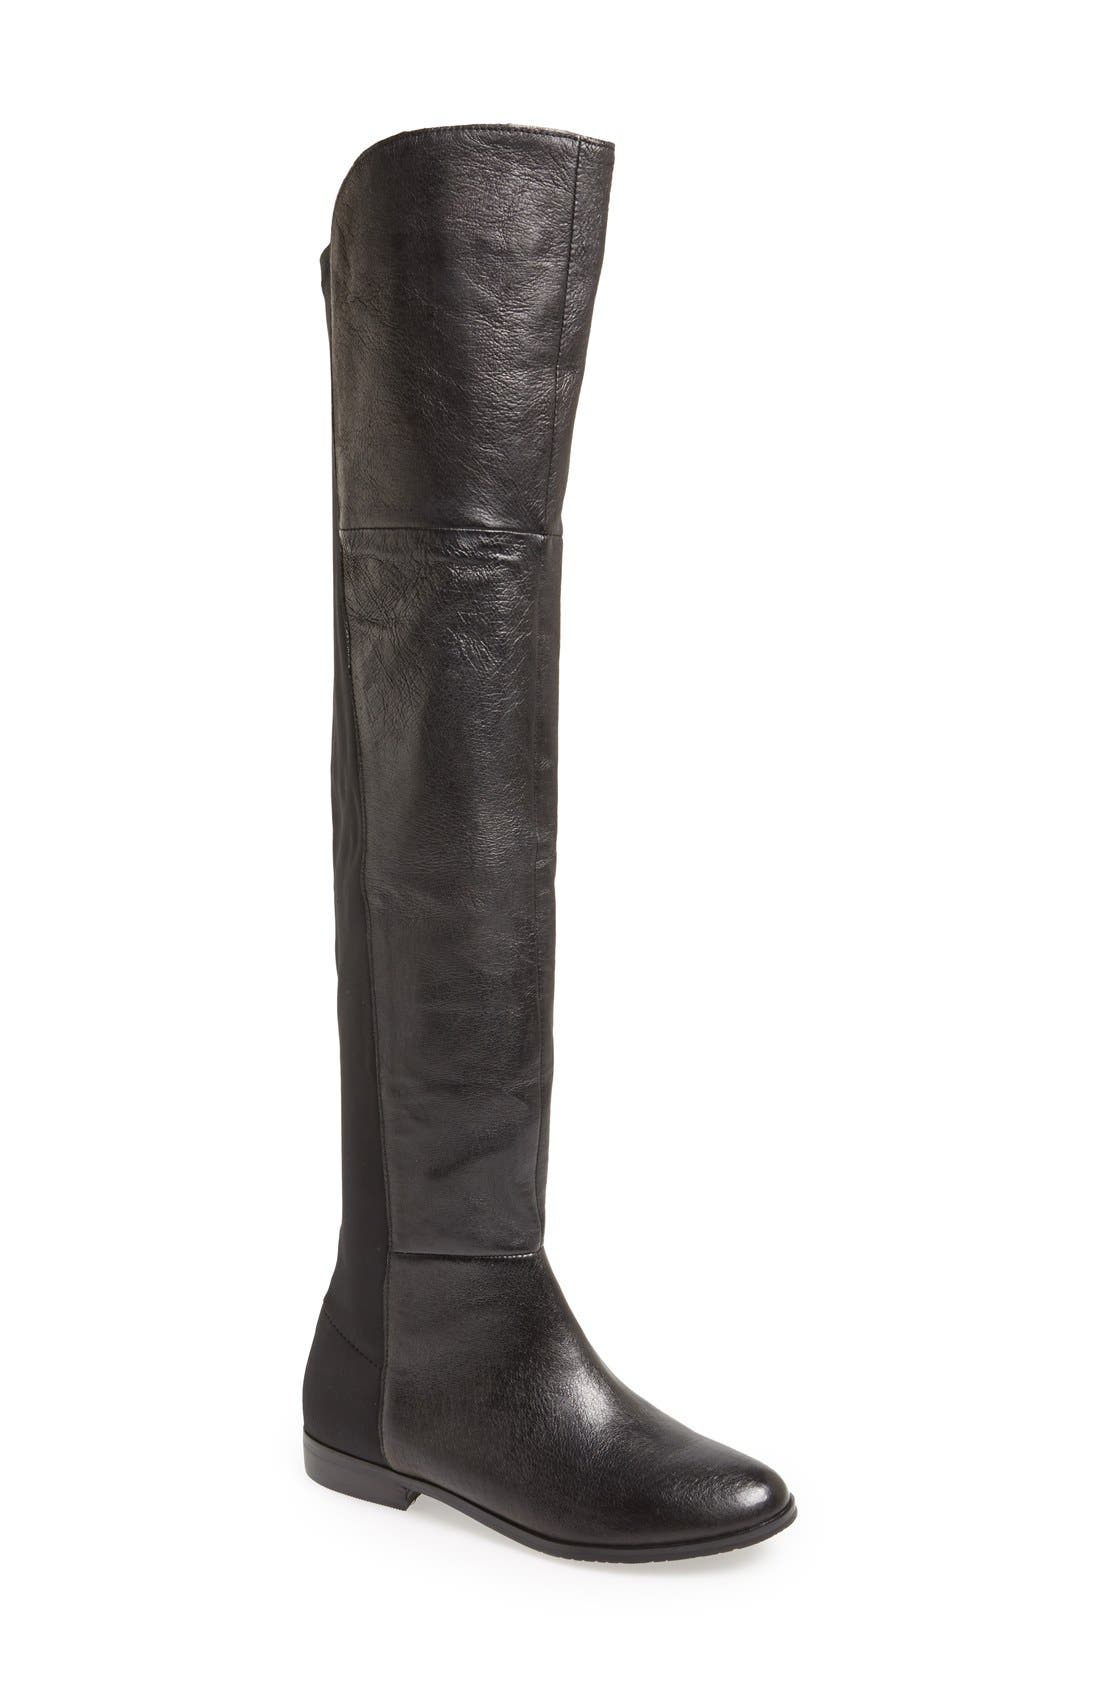 Alternate Image 1 Selected - Chinese Laundry 'Riley' Over The Knee Boot (Women)